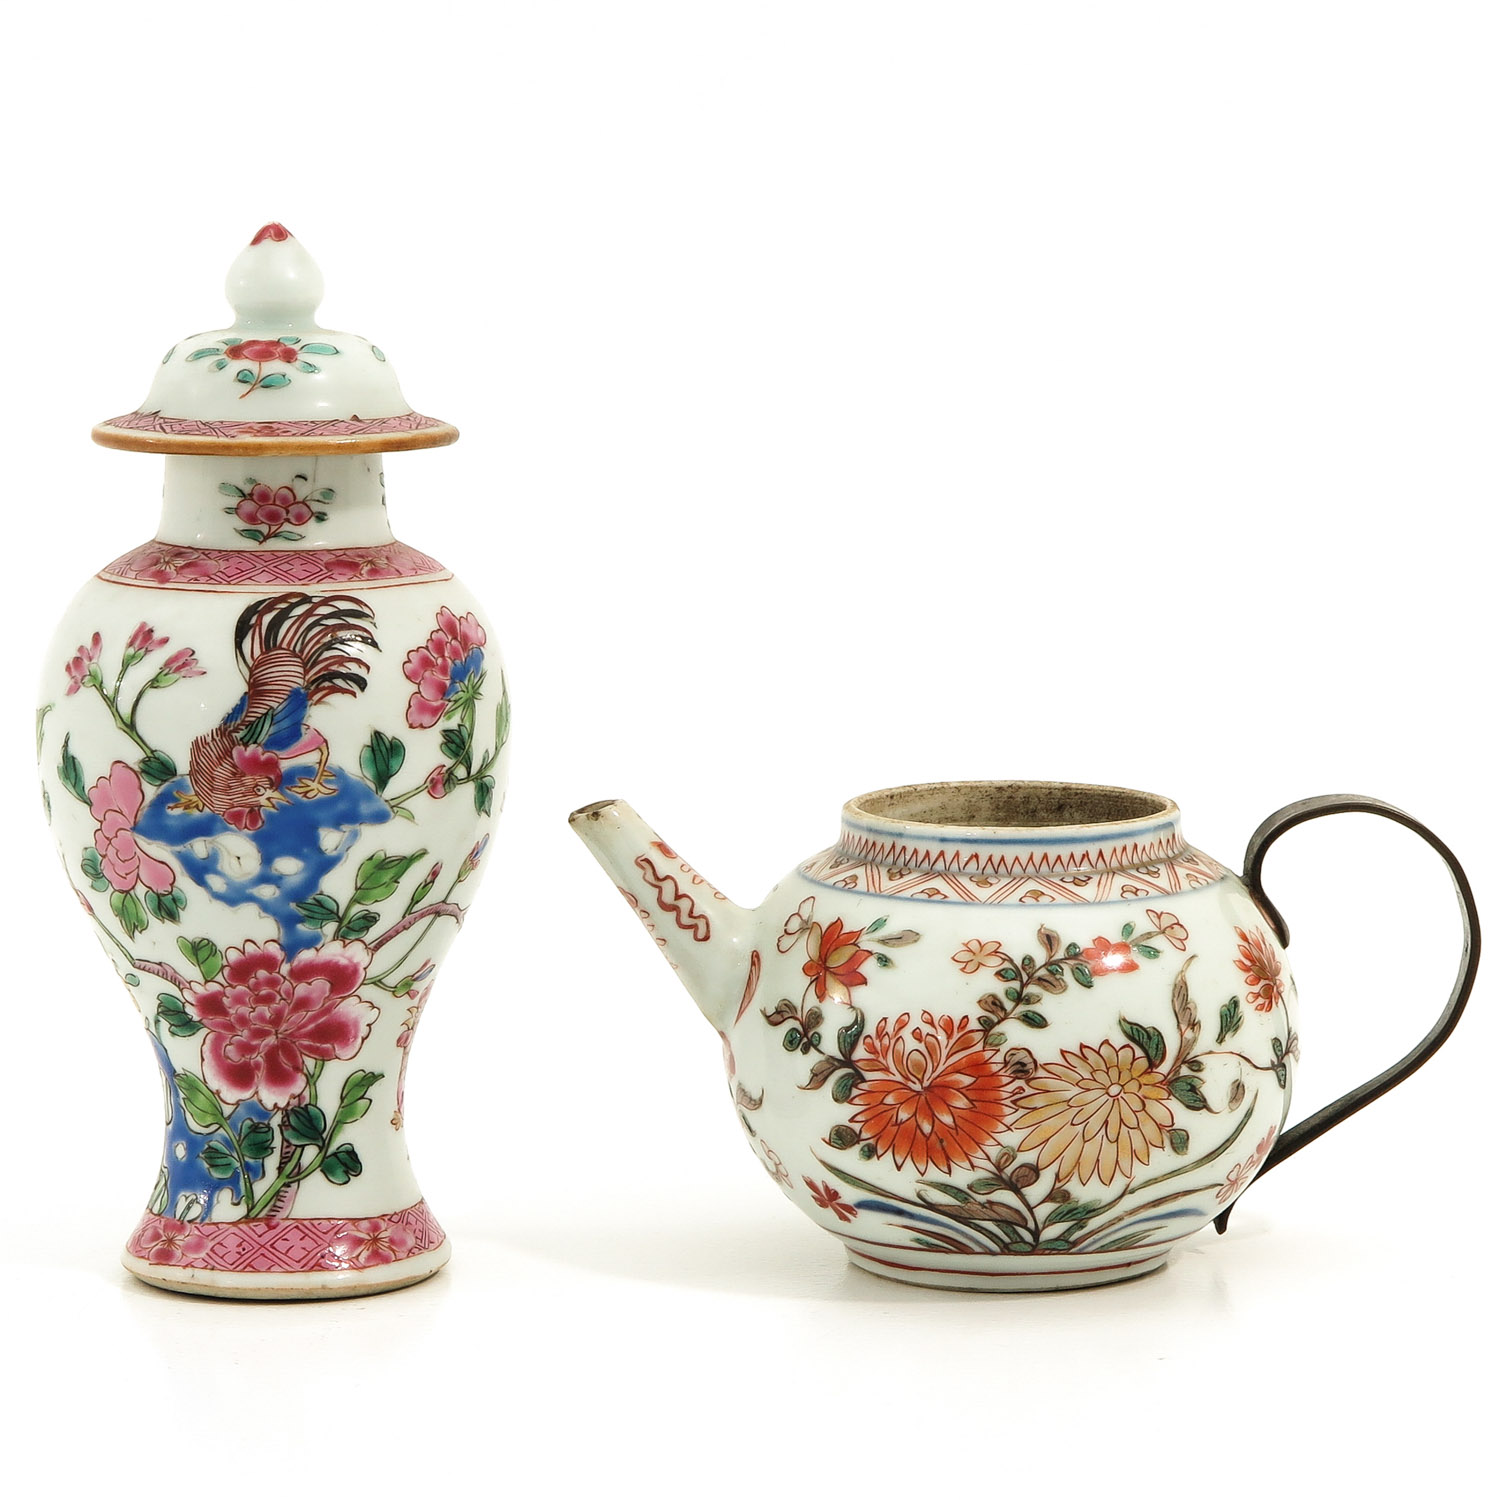 A Famille Rose Vase and Teapot